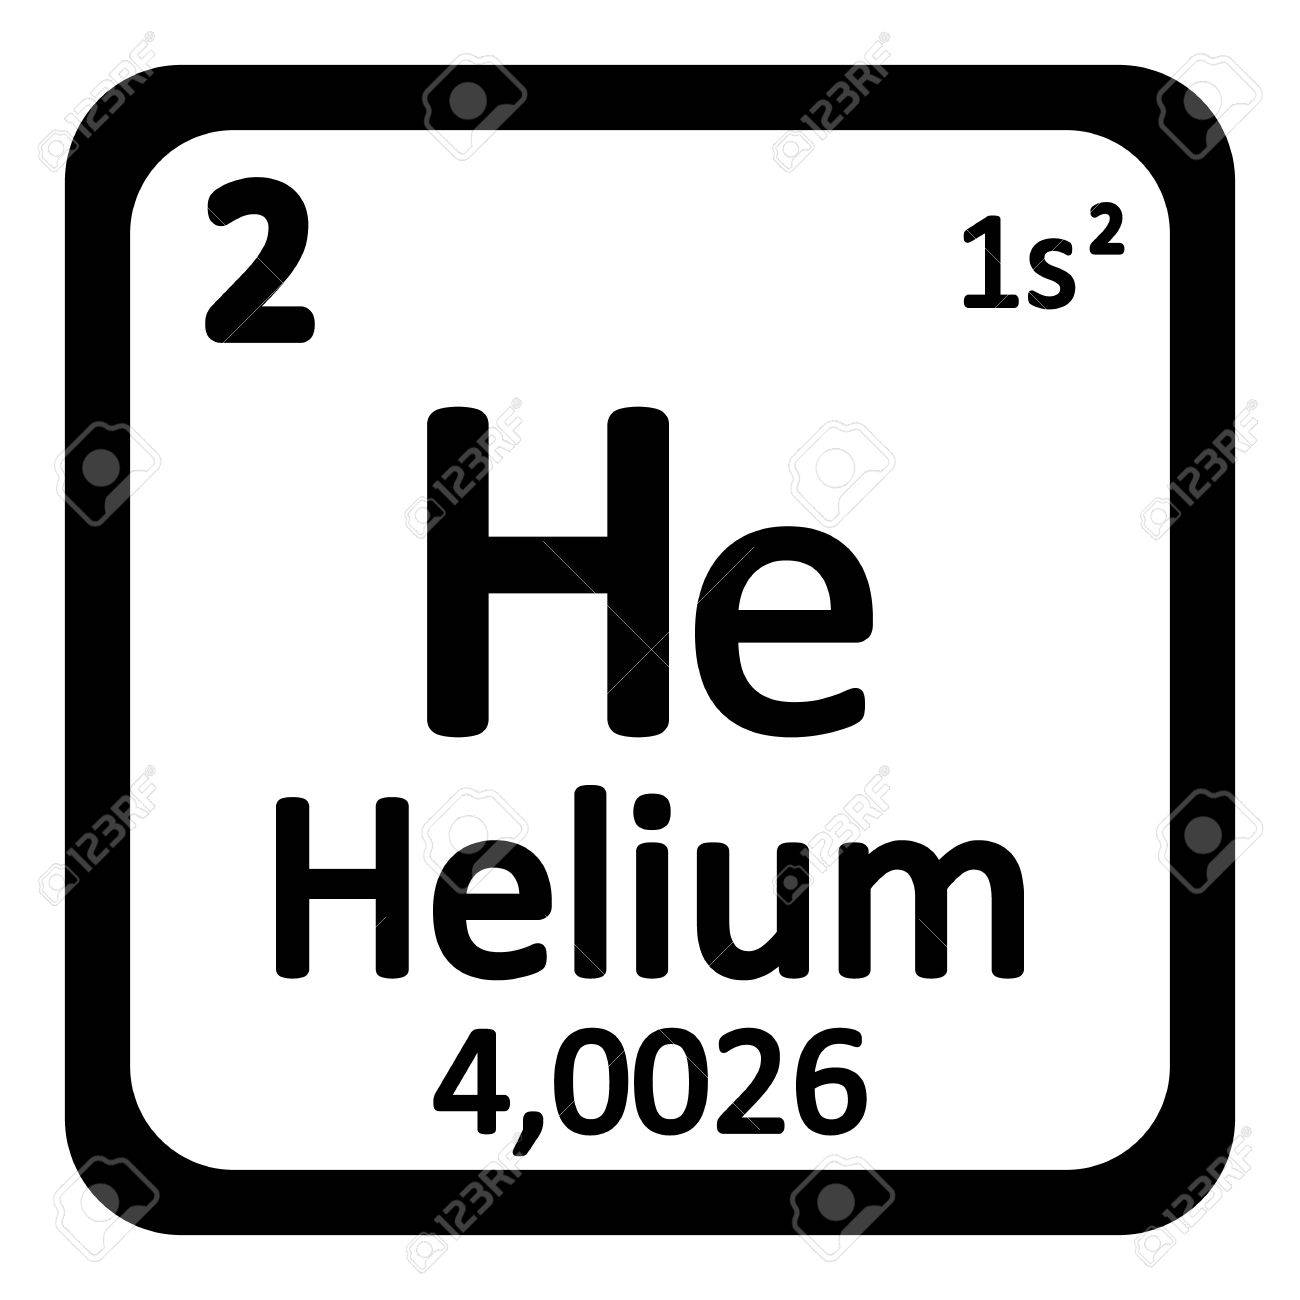 Helium symbol on periodic table images periodic table images helium symbol on periodic table image collections periodic table periodic table element helium icon on white gamestrikefo Images